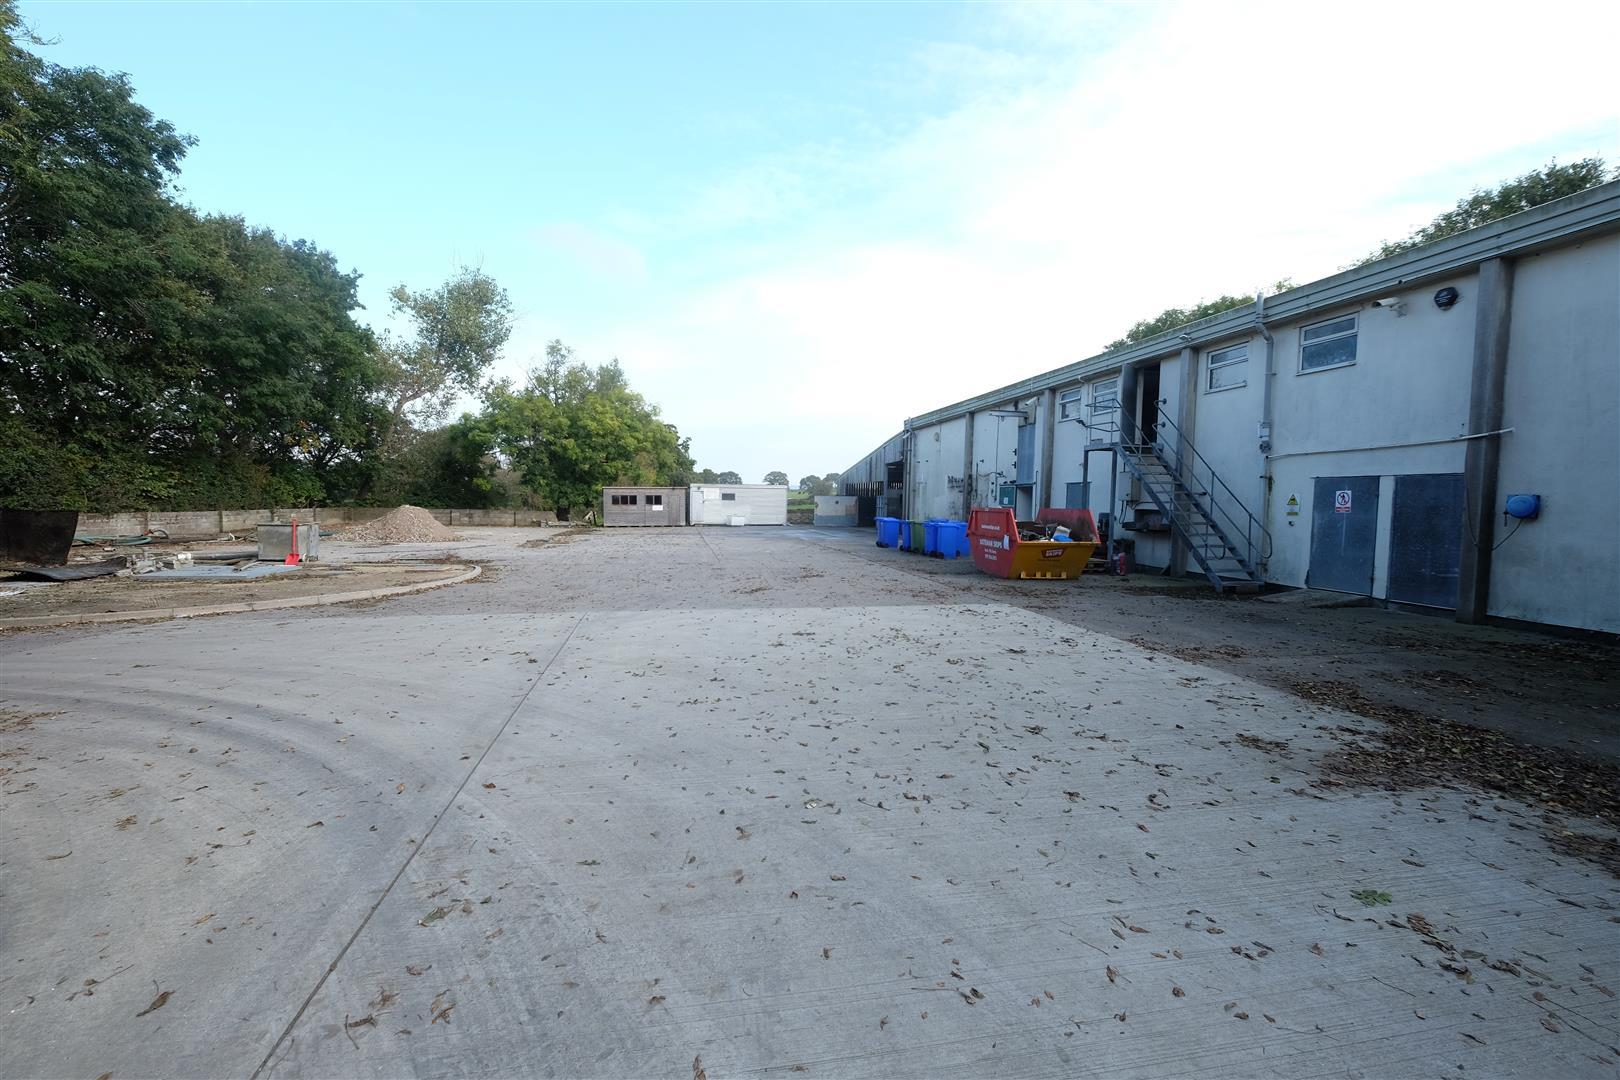 Images for 2.7 ACRES - NAILSEA EAID:hollismoapi BID:21